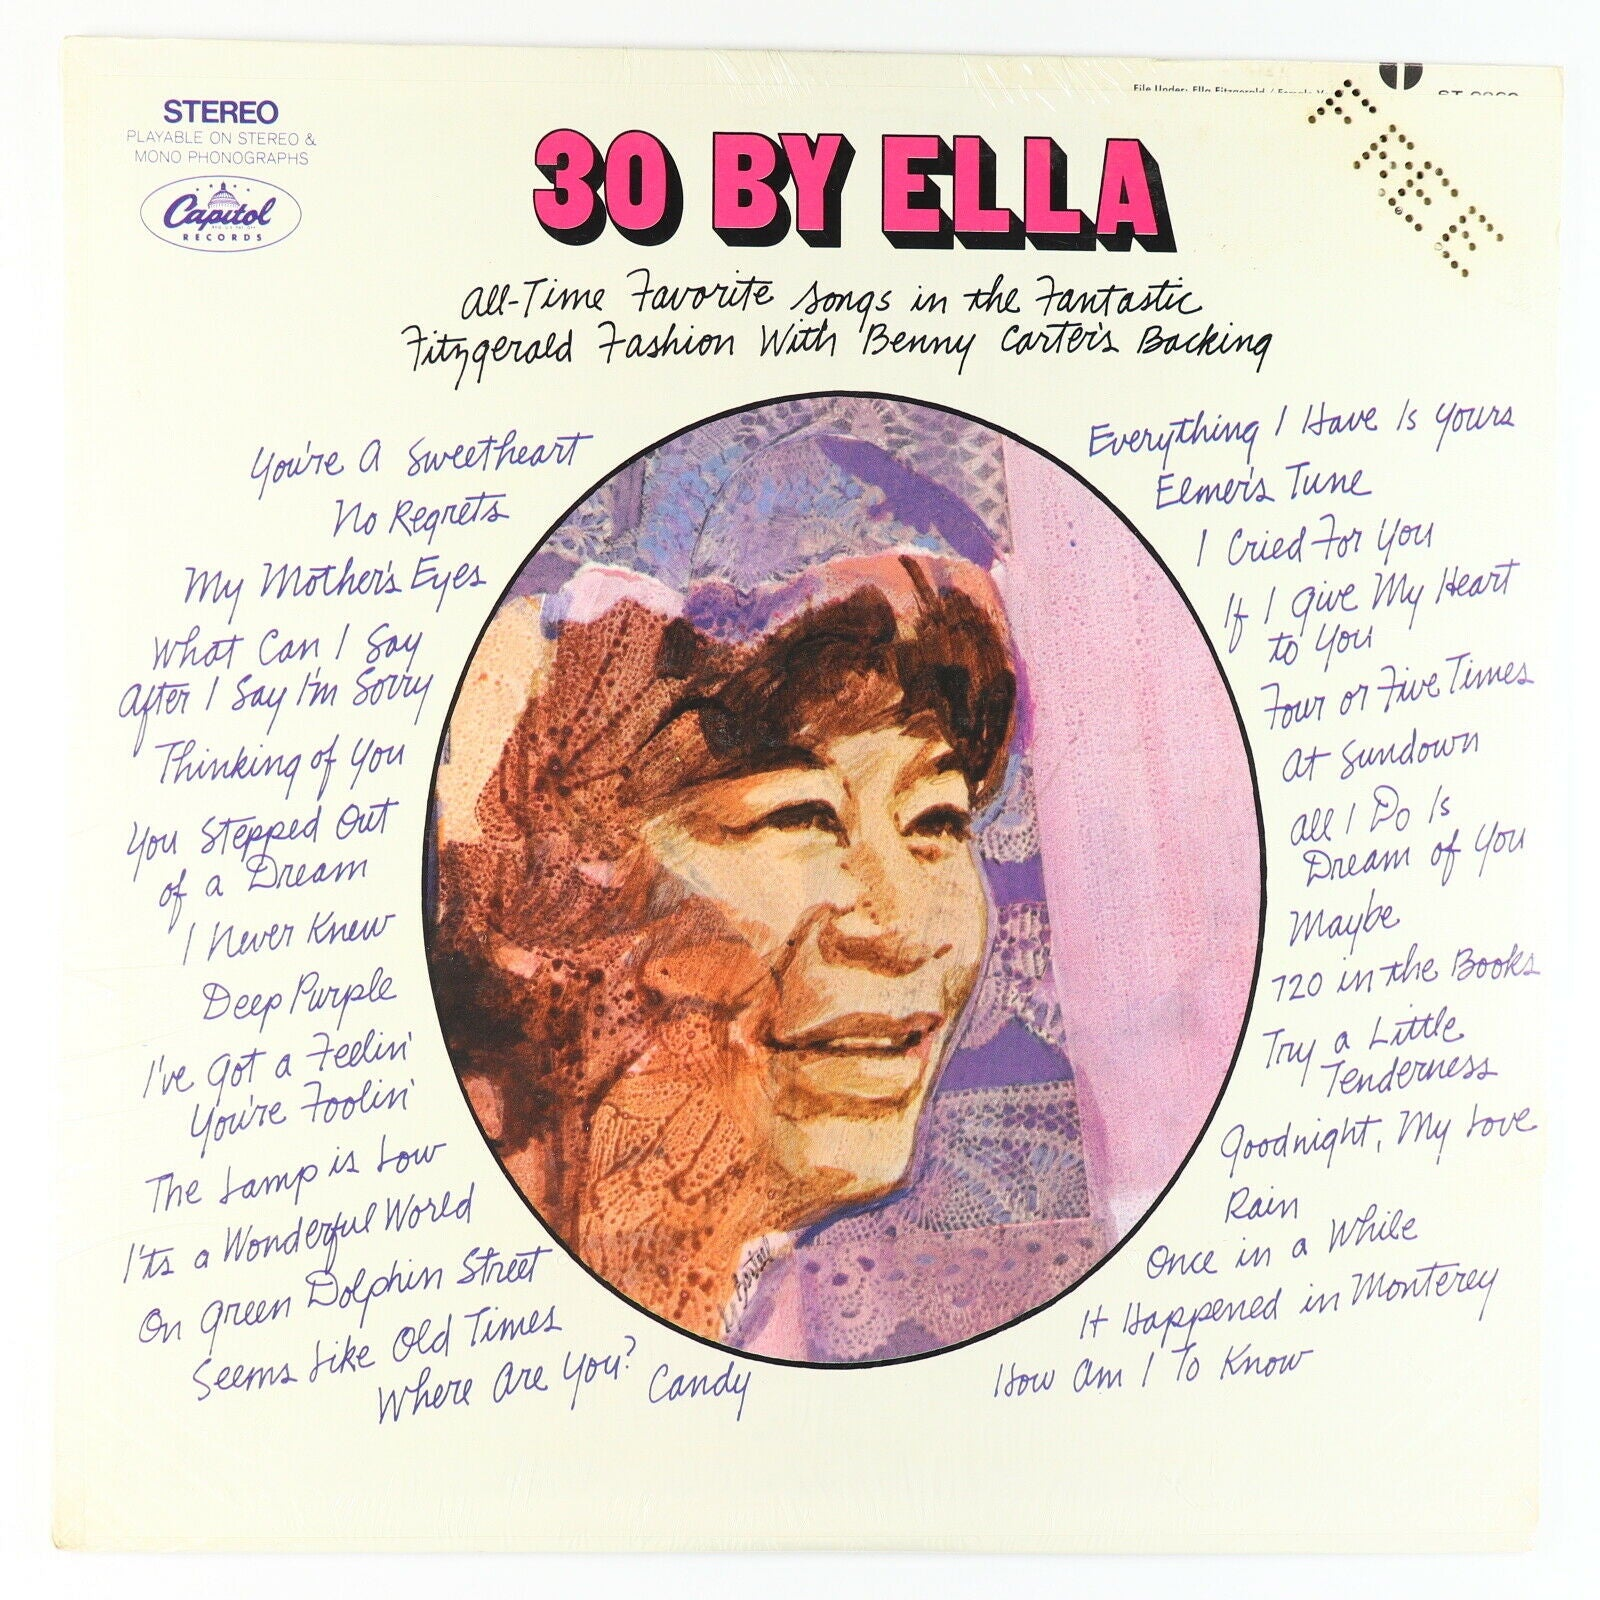 Ella Fitzgerald ‎– 30 By Ella - New Lp Record 1968 Capitol USA Stereo Original Vinyl - Jazz